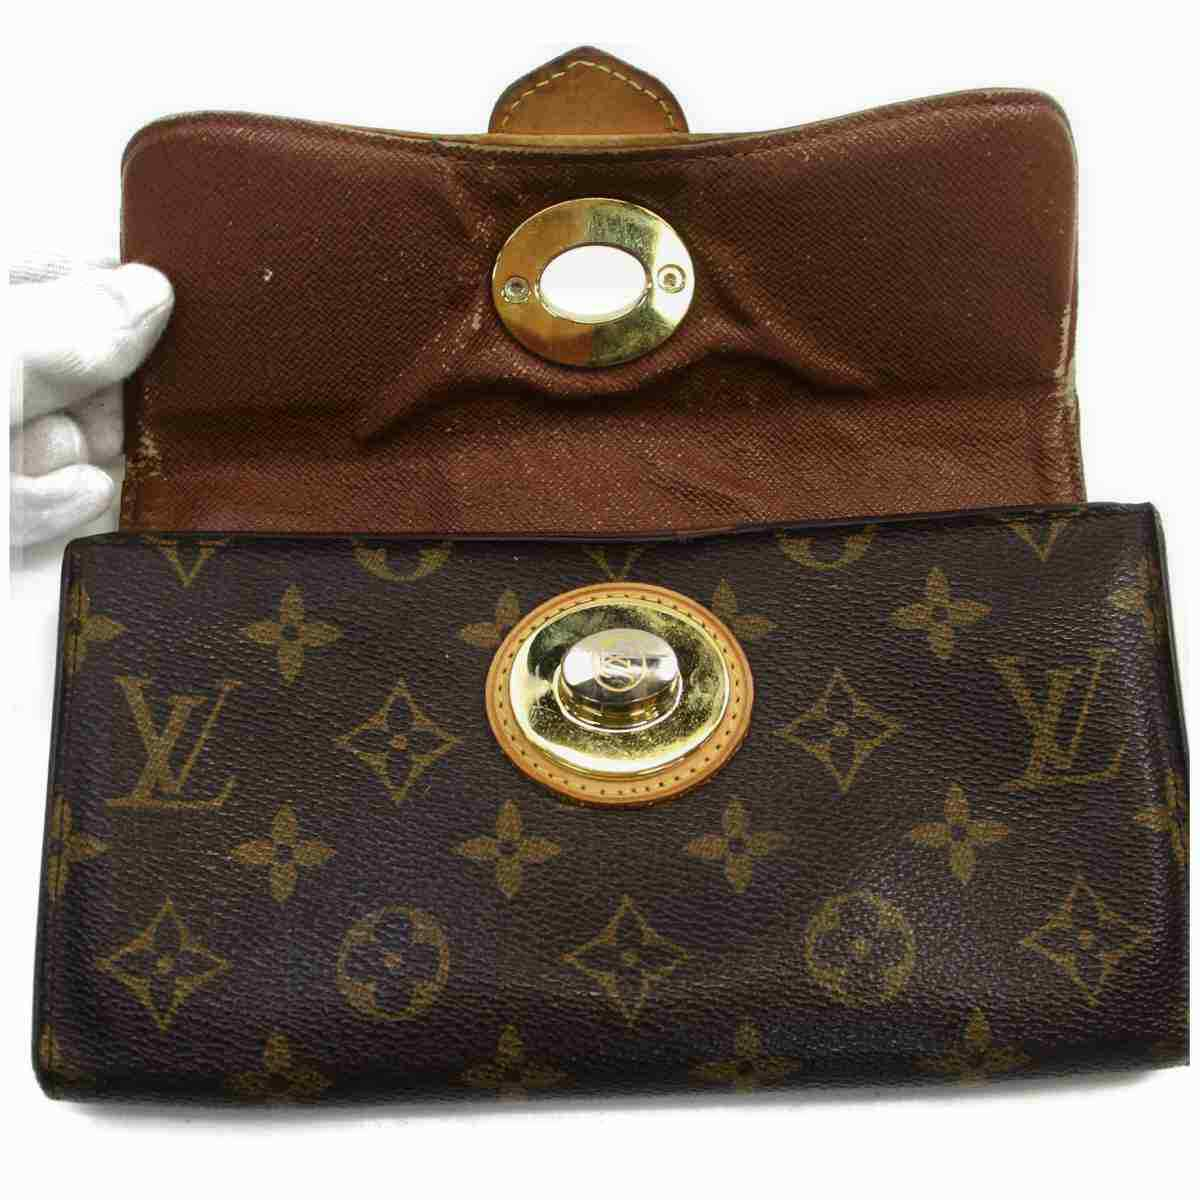 Louis Vuitton Boetie M63220 Brown Monogram Long Wallet  11505